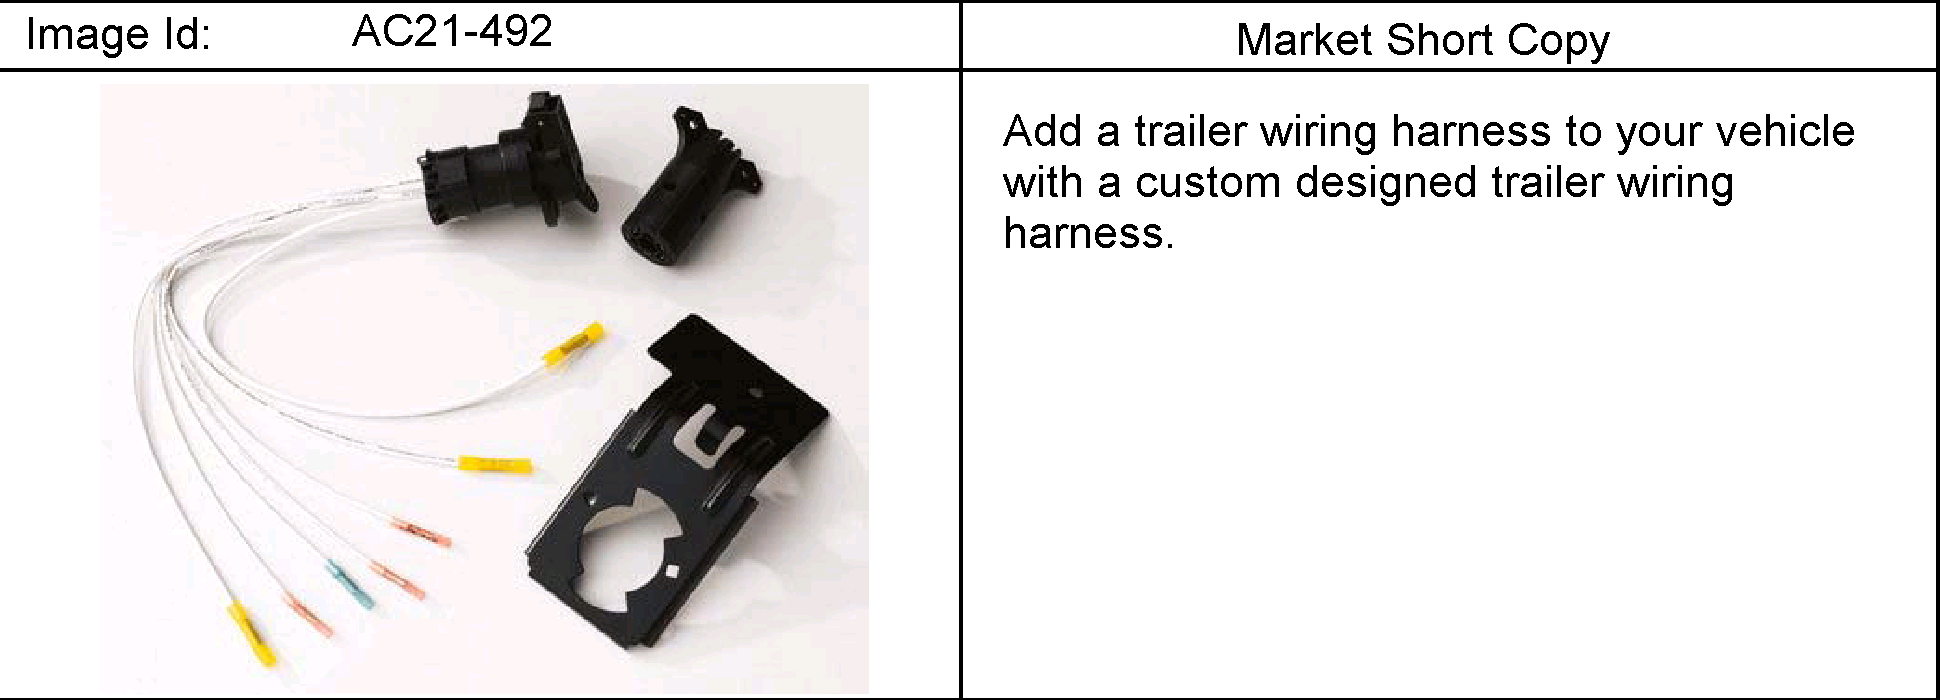 Colorado Trailer Wiring Harness on trailer generator, trailer fuses, trailer brakes, trailer plugs, trailer hitch harness, trailer mounting brackets,